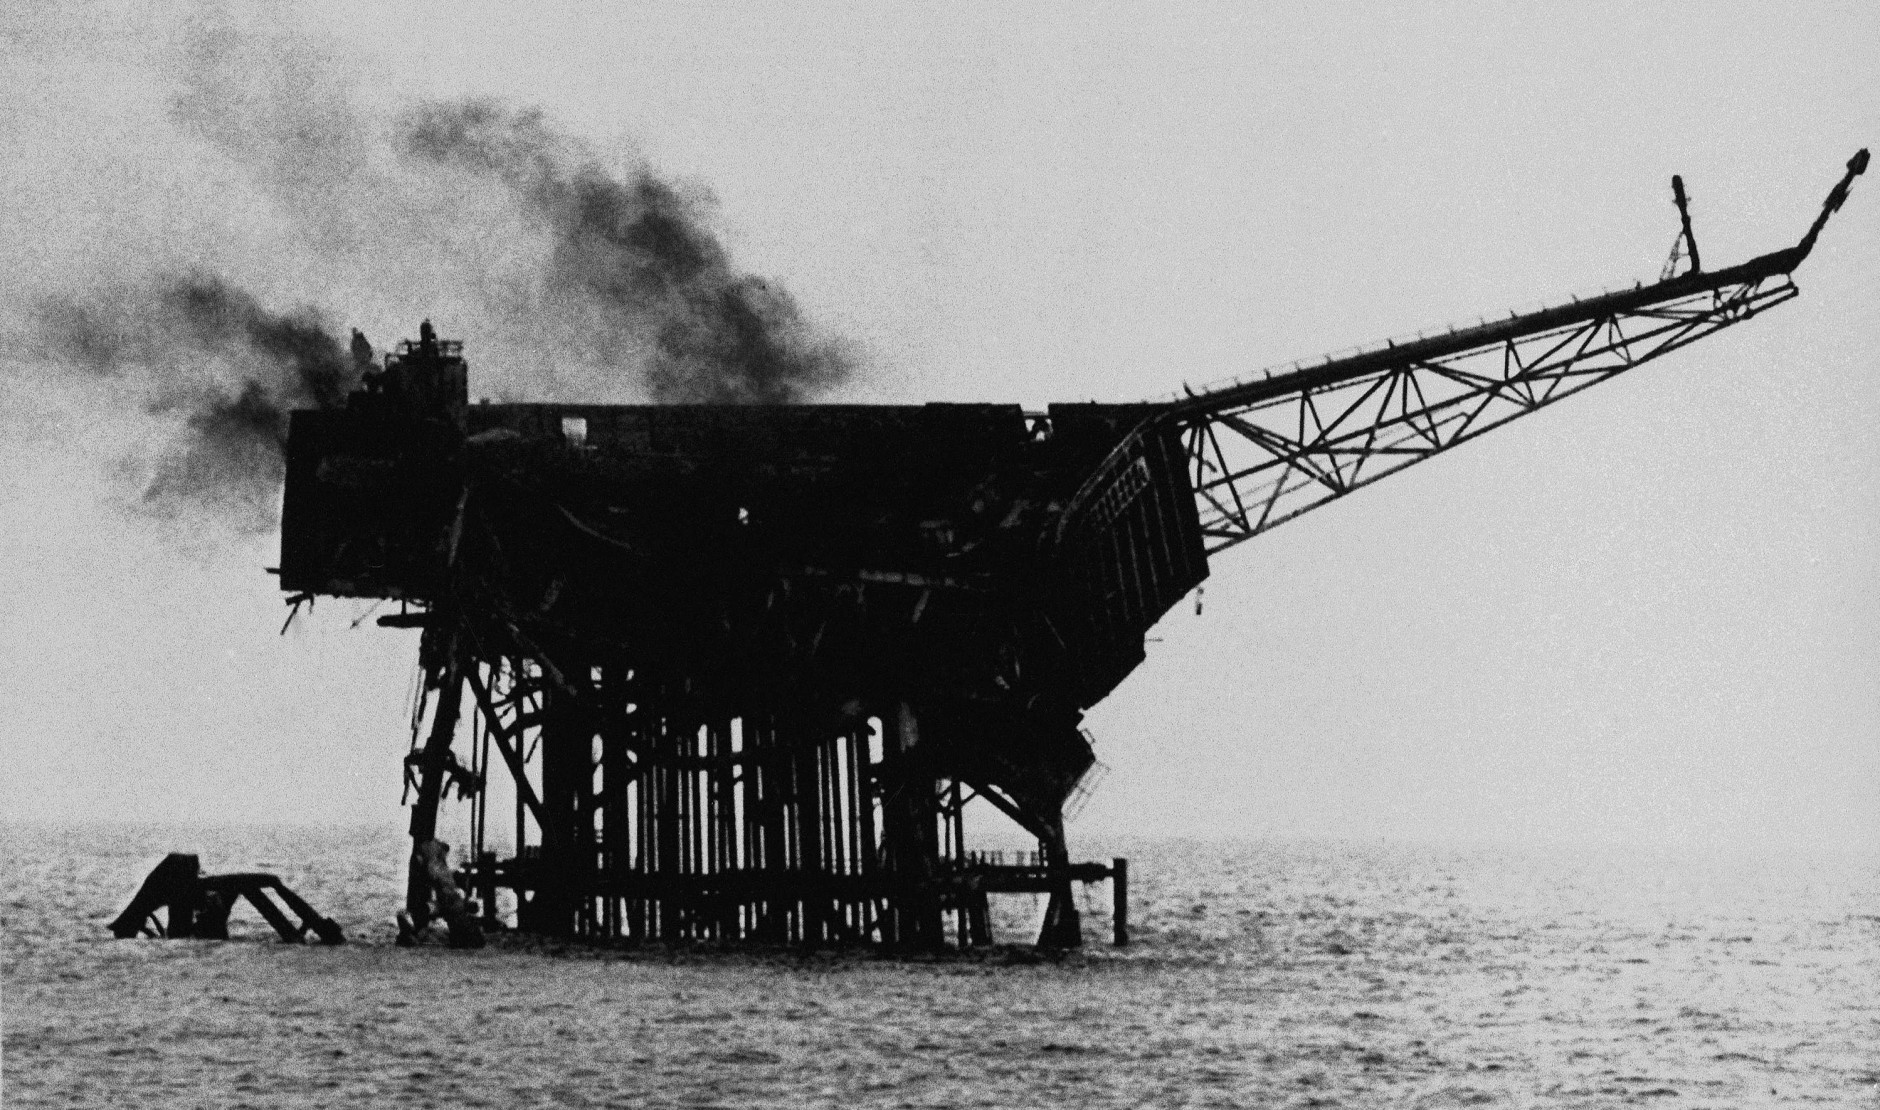 Smoke rises from the burnt out shell of the Piper Alpha oil platform in the North Sea off the coast of Aberdeen, Scotland, July 7, 1988. More than 150 oil rig workers died, when the rig exploded and caught fire Wednesday night. (AP Photo)